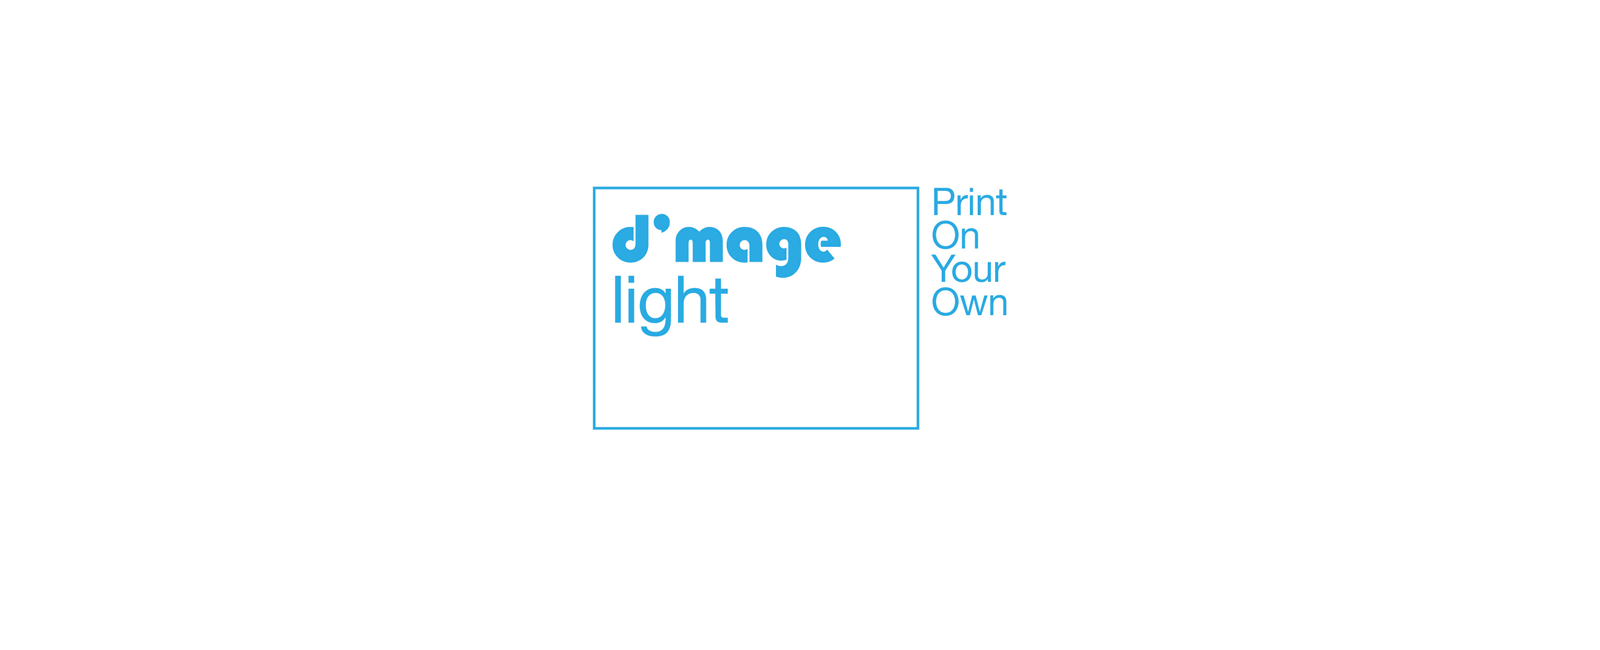 d'mage light | PRINT ON YOUR OWN